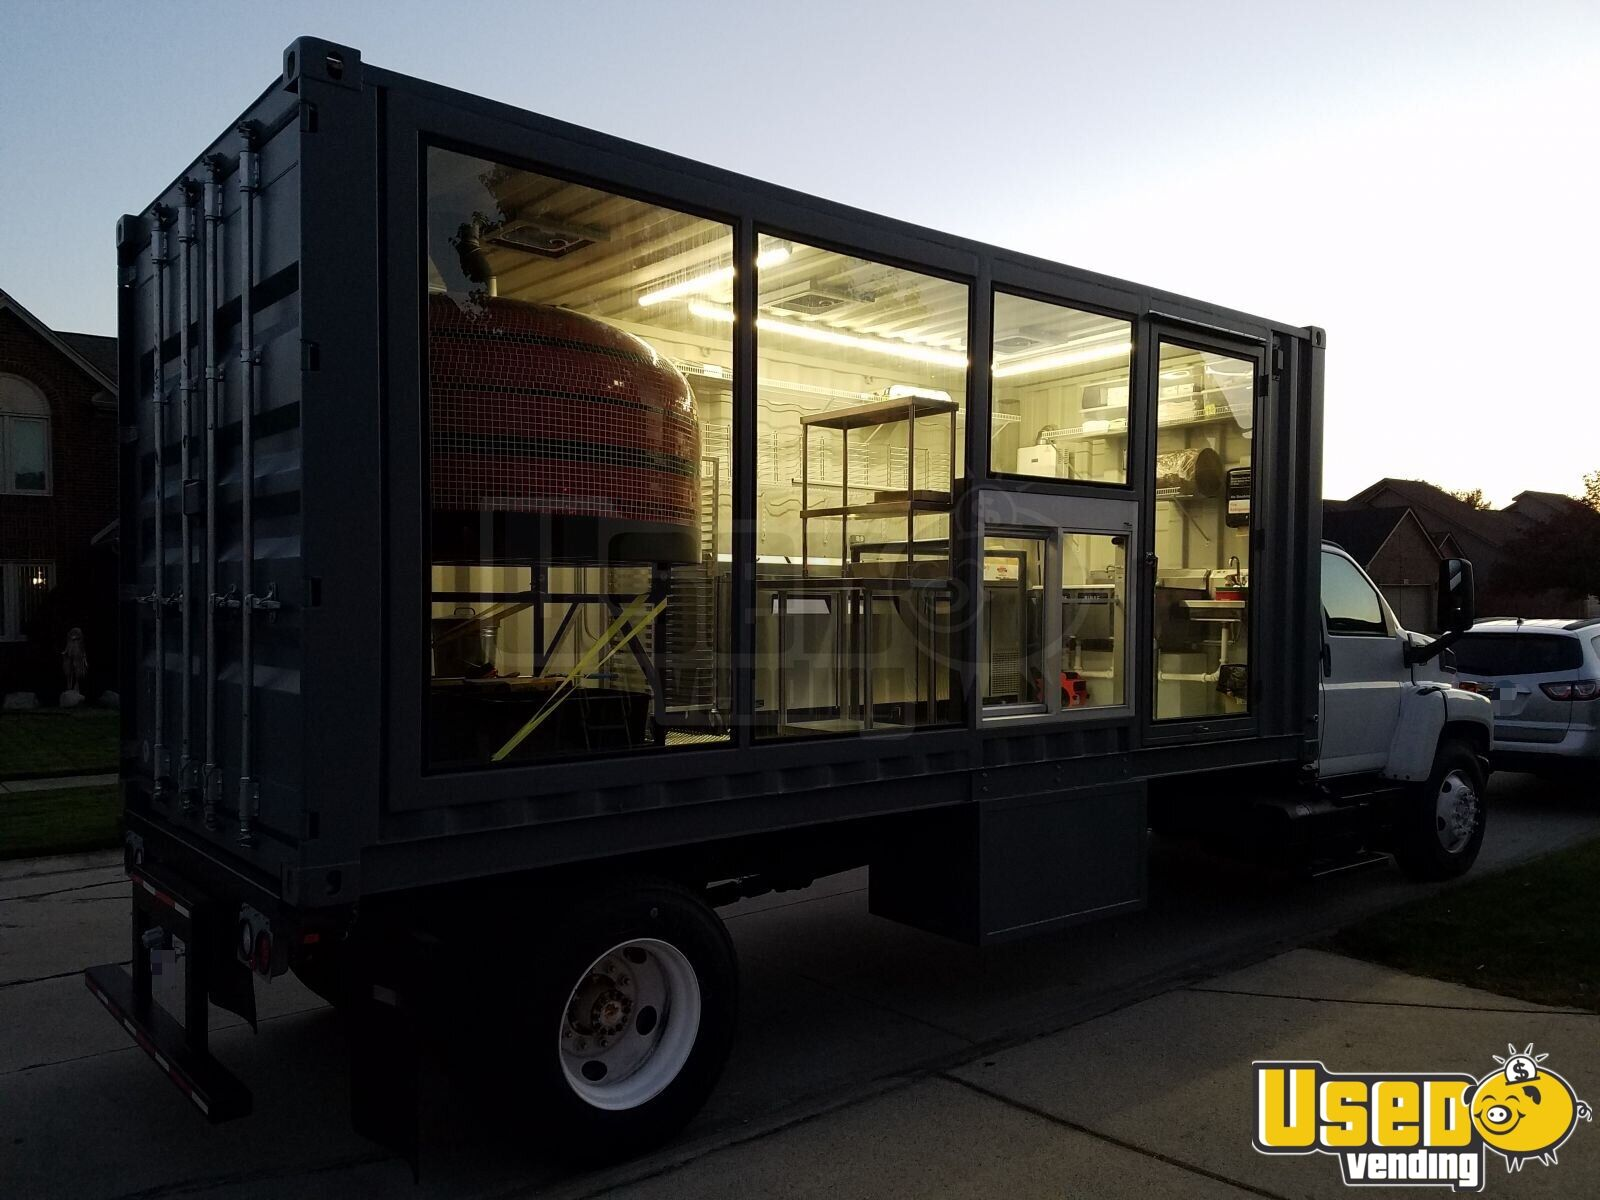 2006 Pizza Food Truck Air Conditioning Michigan Diesel Engine for Sale - 2